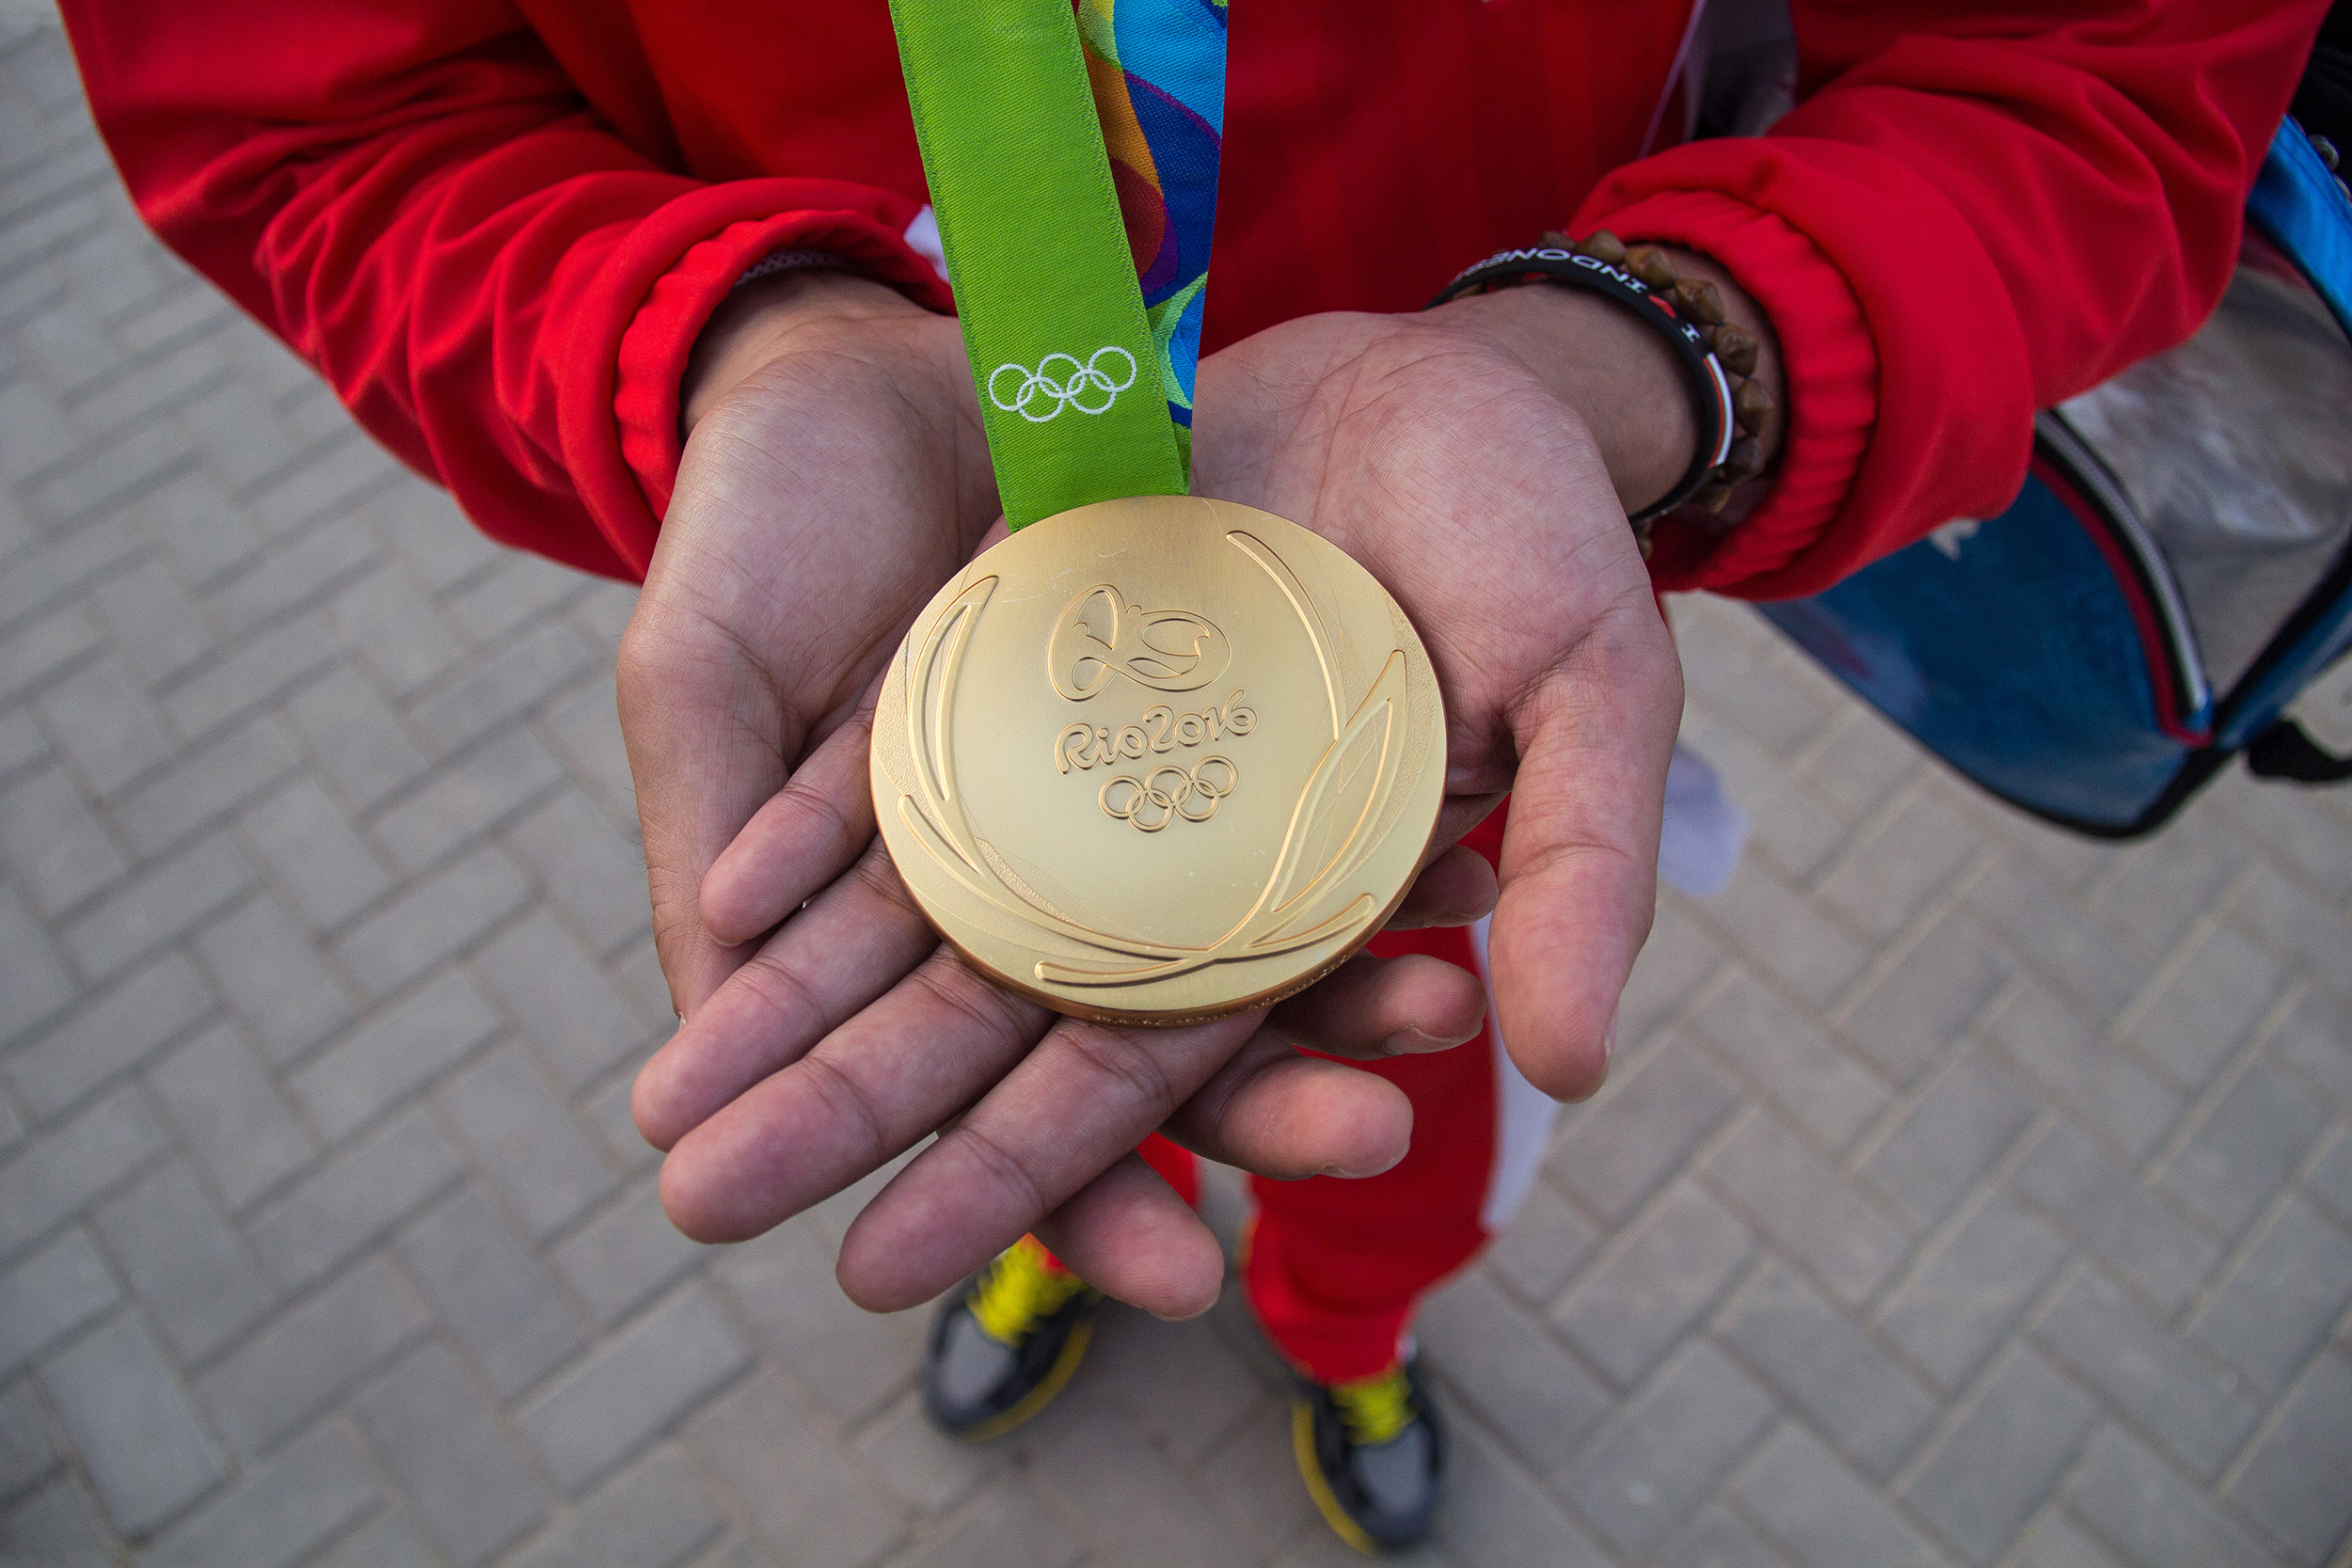 Rio 2016, Olympic Medal